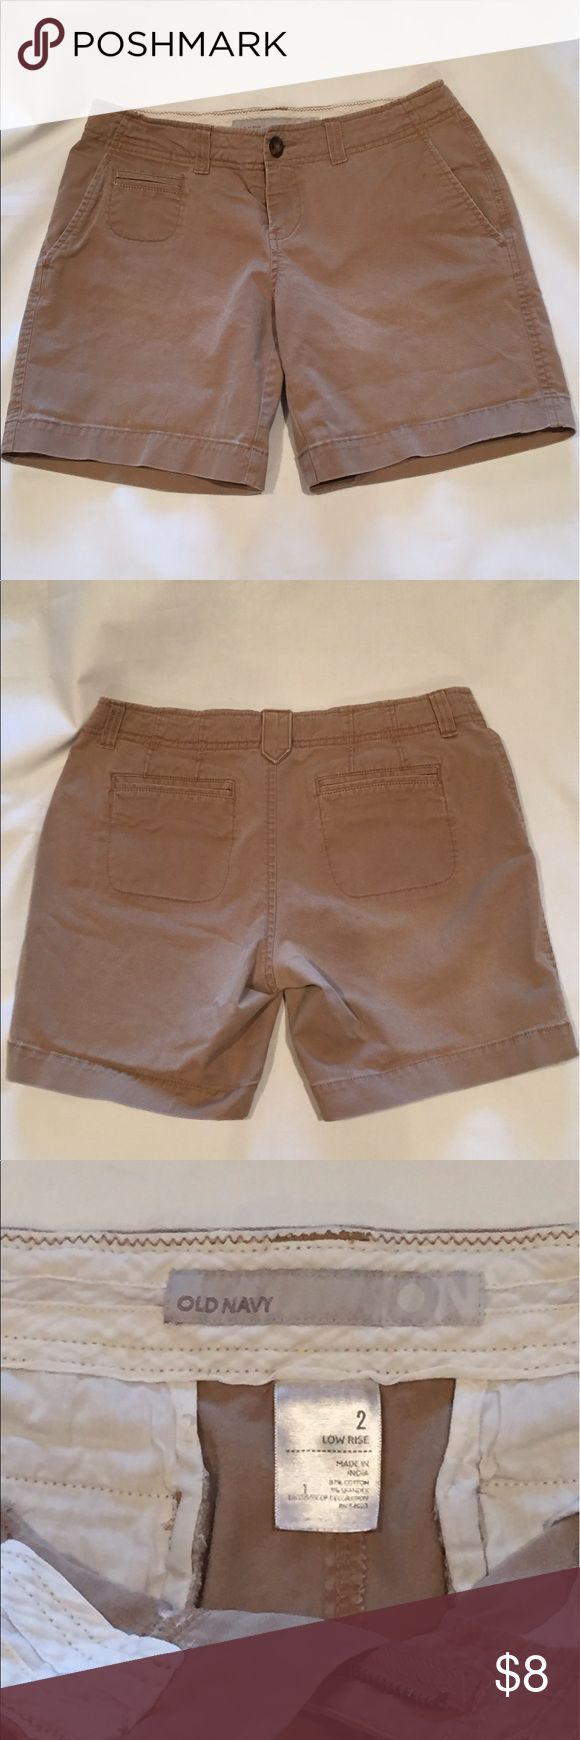 Womens Khaki Shorts Old Navy 2 Comfy low rise shorts gently worn. Old Navy Shorts